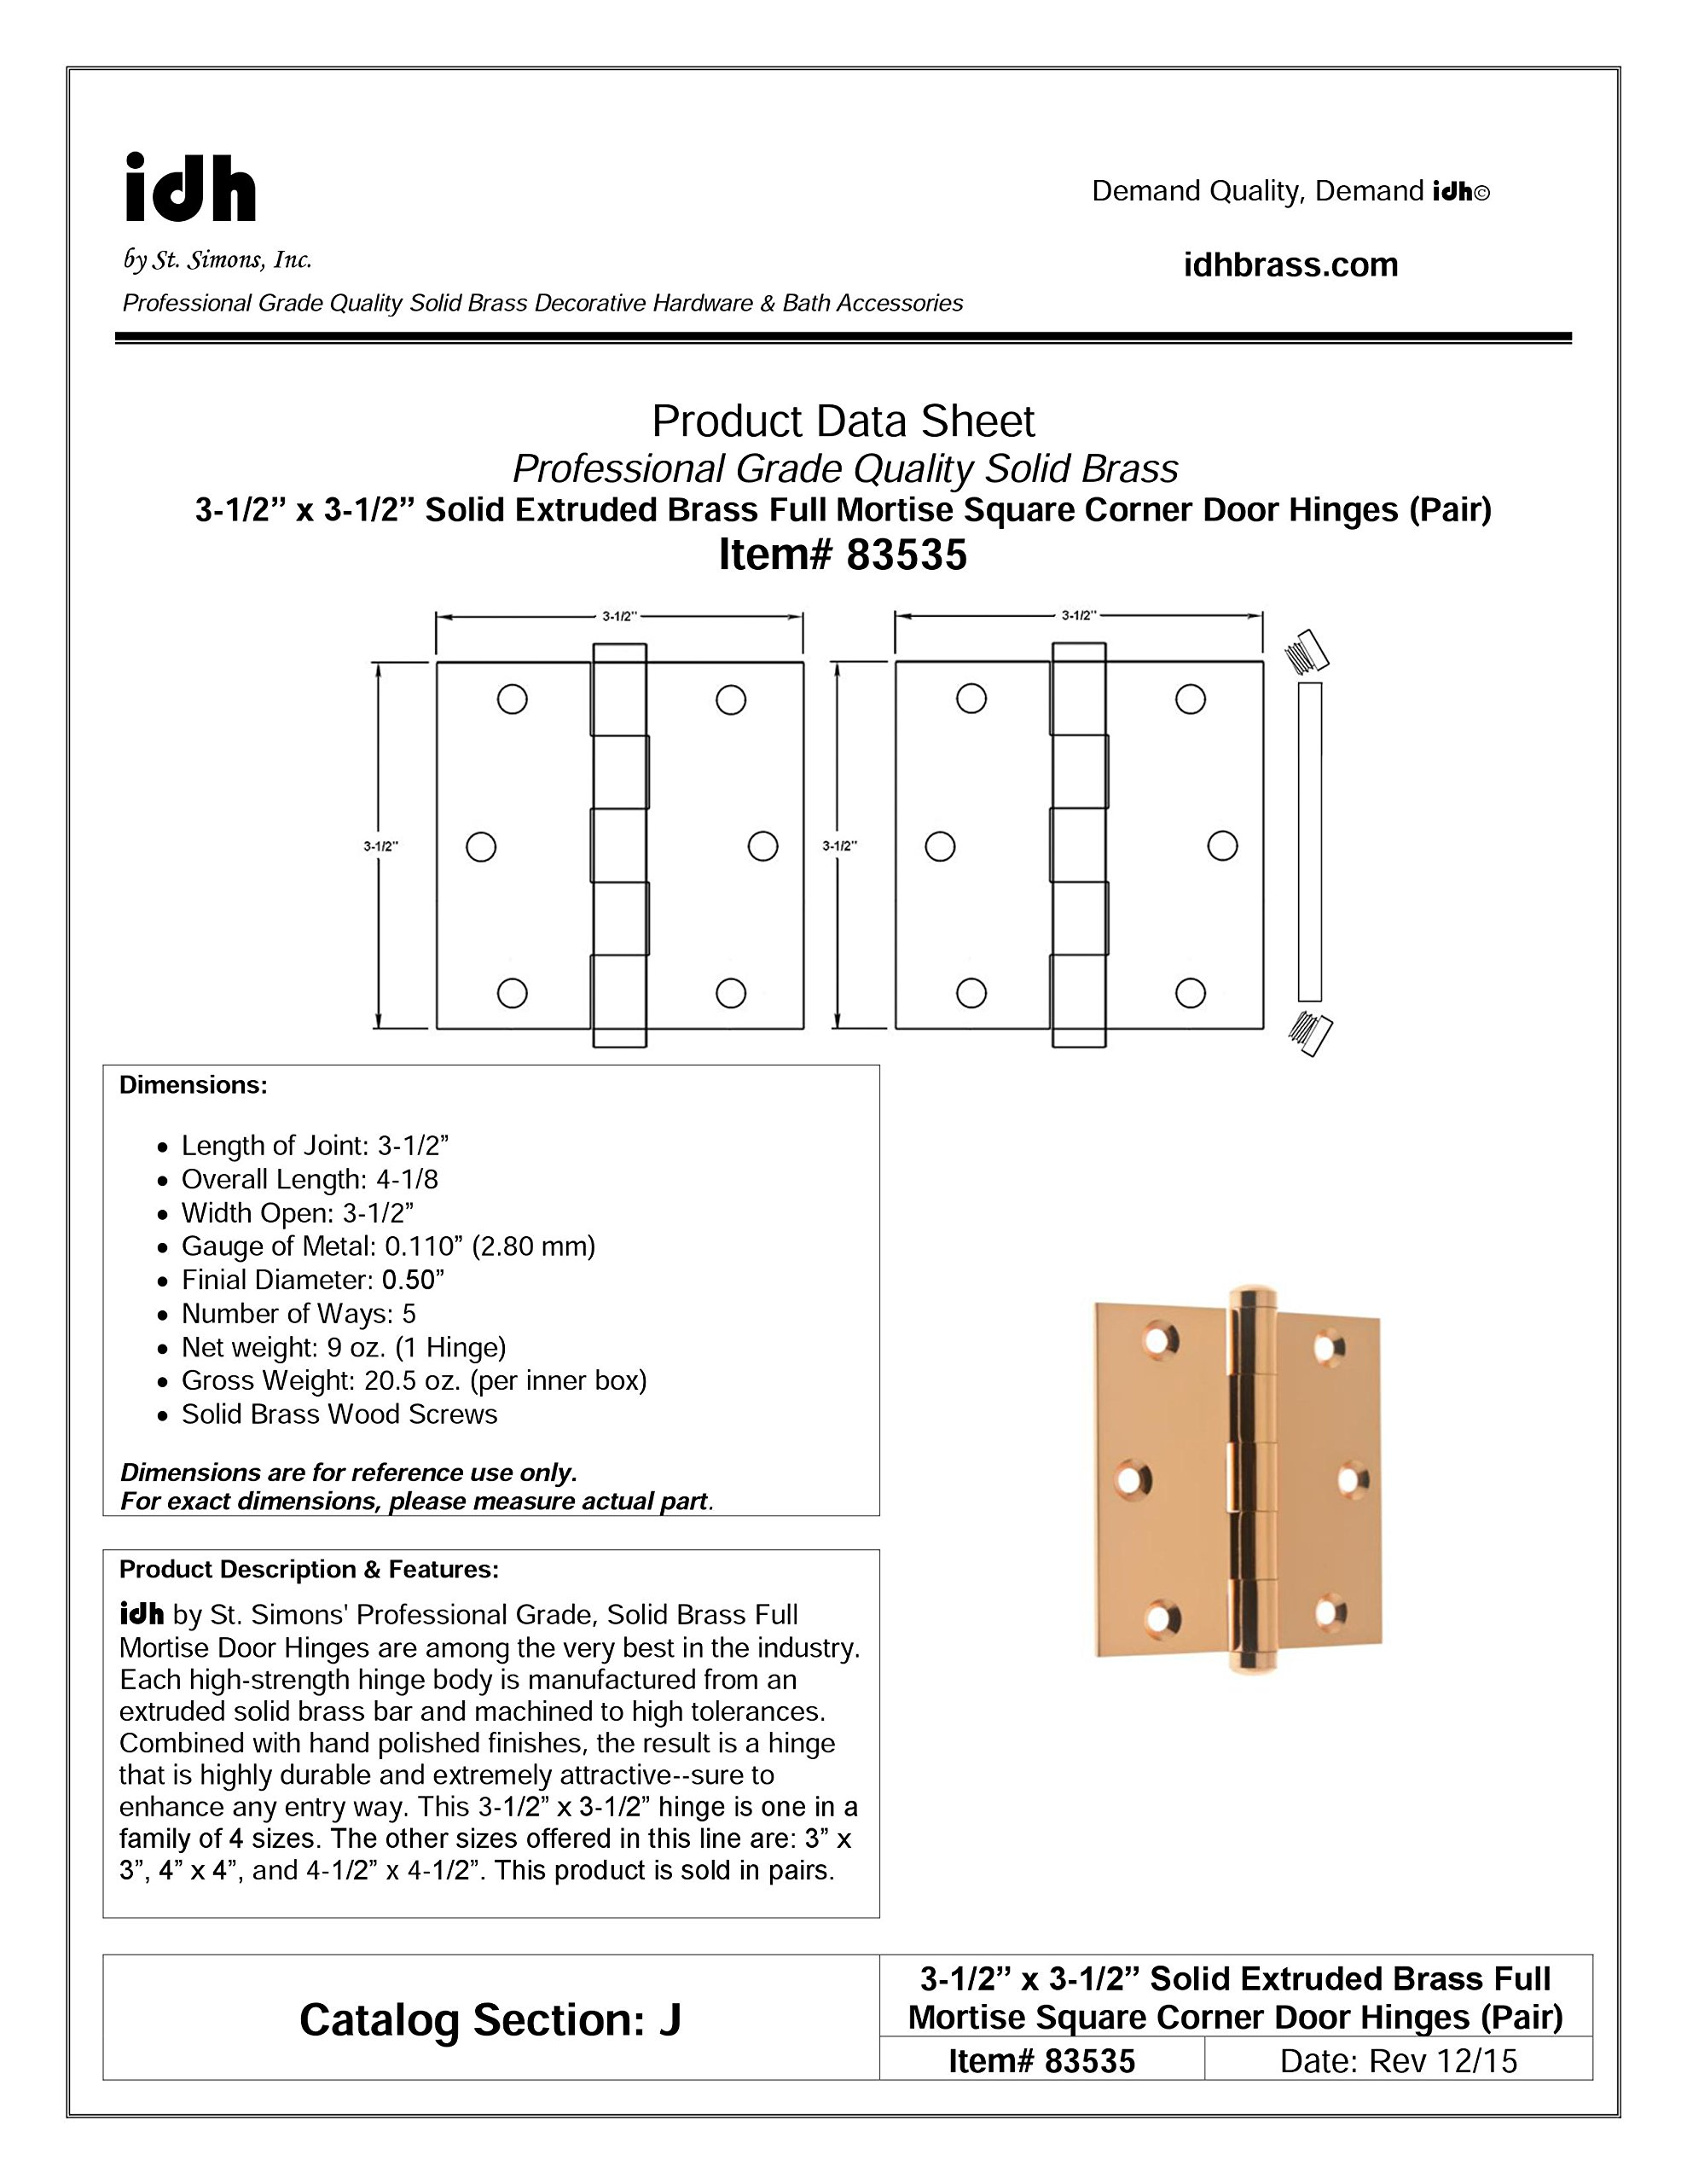 """Professional Grade Quality Solid Brass 3-1/2"""" x 3-1/2"""" Full Mortise Square Corner Door Hinges by idh (Pair) (Bright Copper)"""